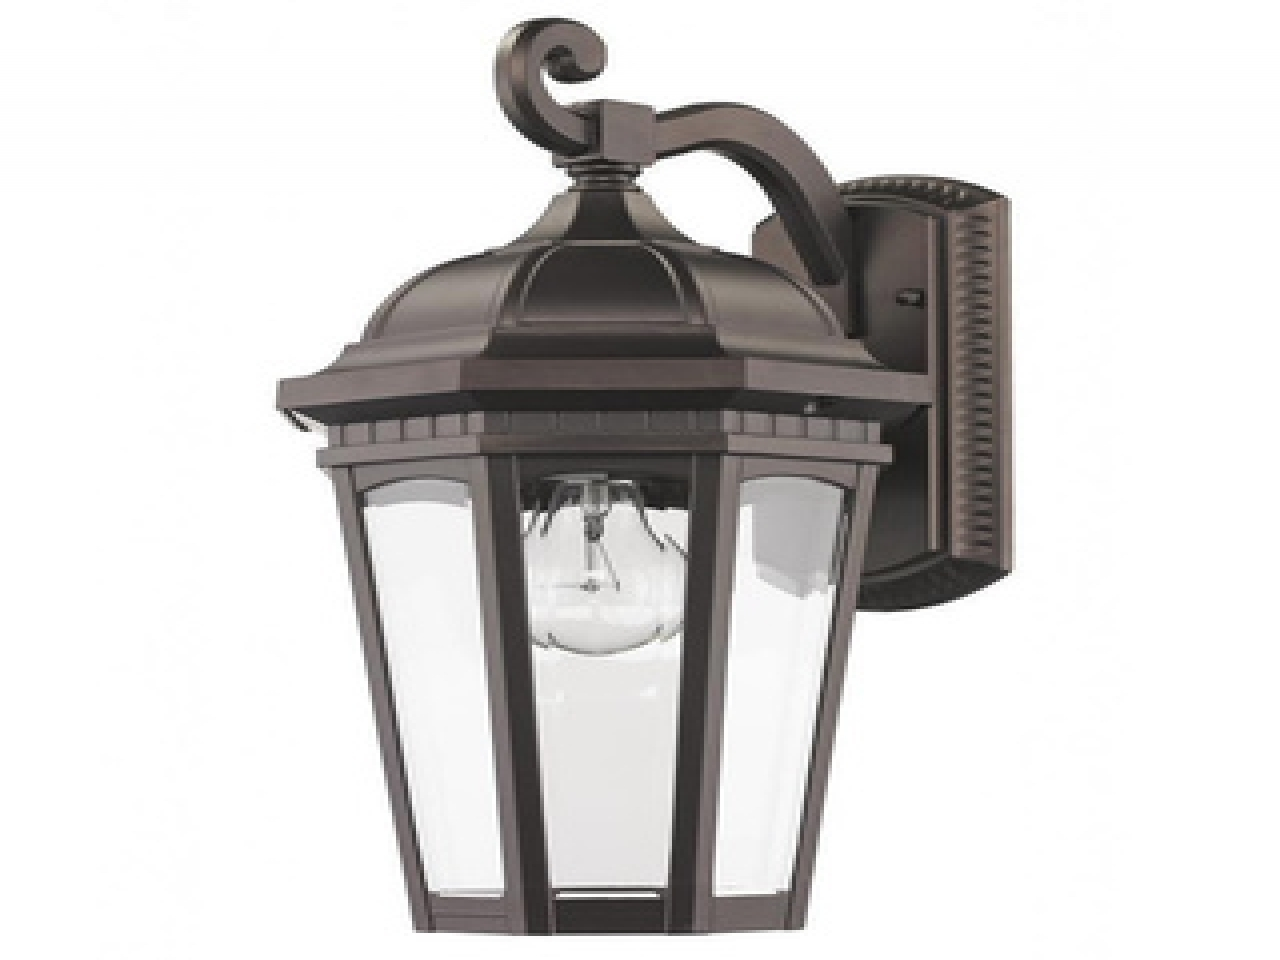 Widely Used Outdoor Wall Lighting At Ebay Pertaining To Light : Lantern Outdoor Wall Mount Lights Simple White Decoration (View 15 of 20)